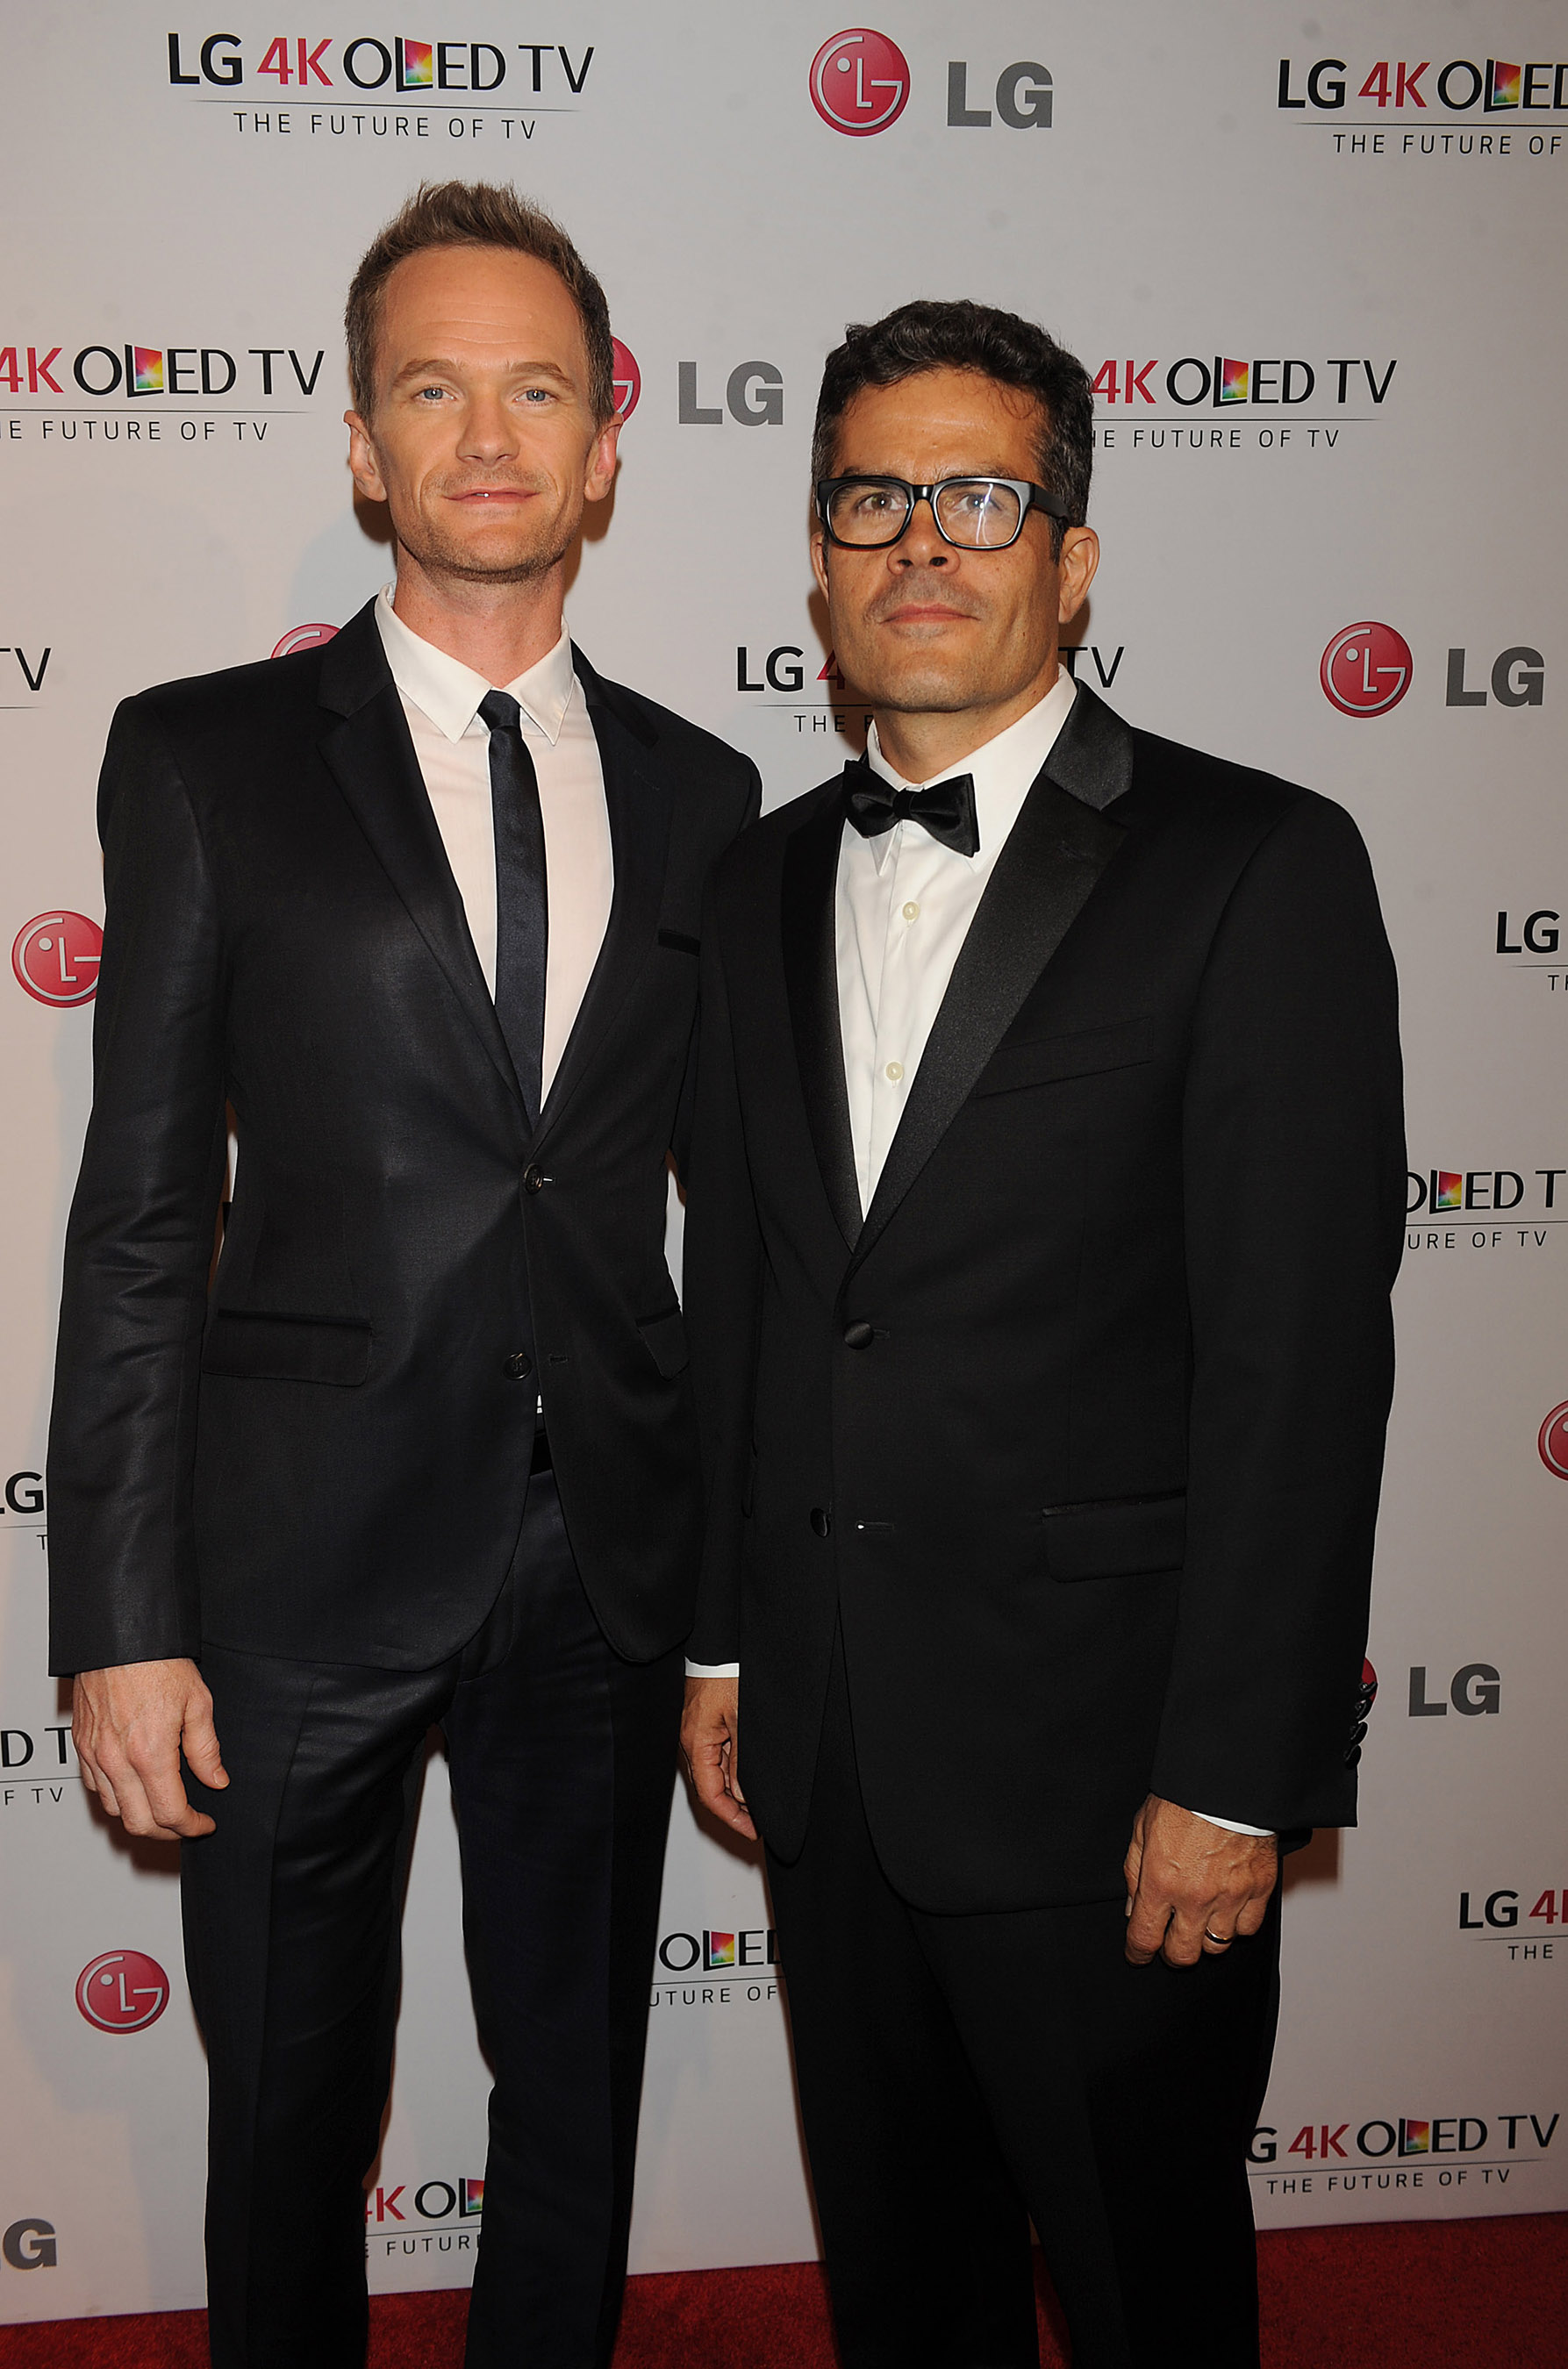 LG Art of the Pixel ambassador Neil Patrick Harris (on left) and Art of the Pixel judge Mark Tribe